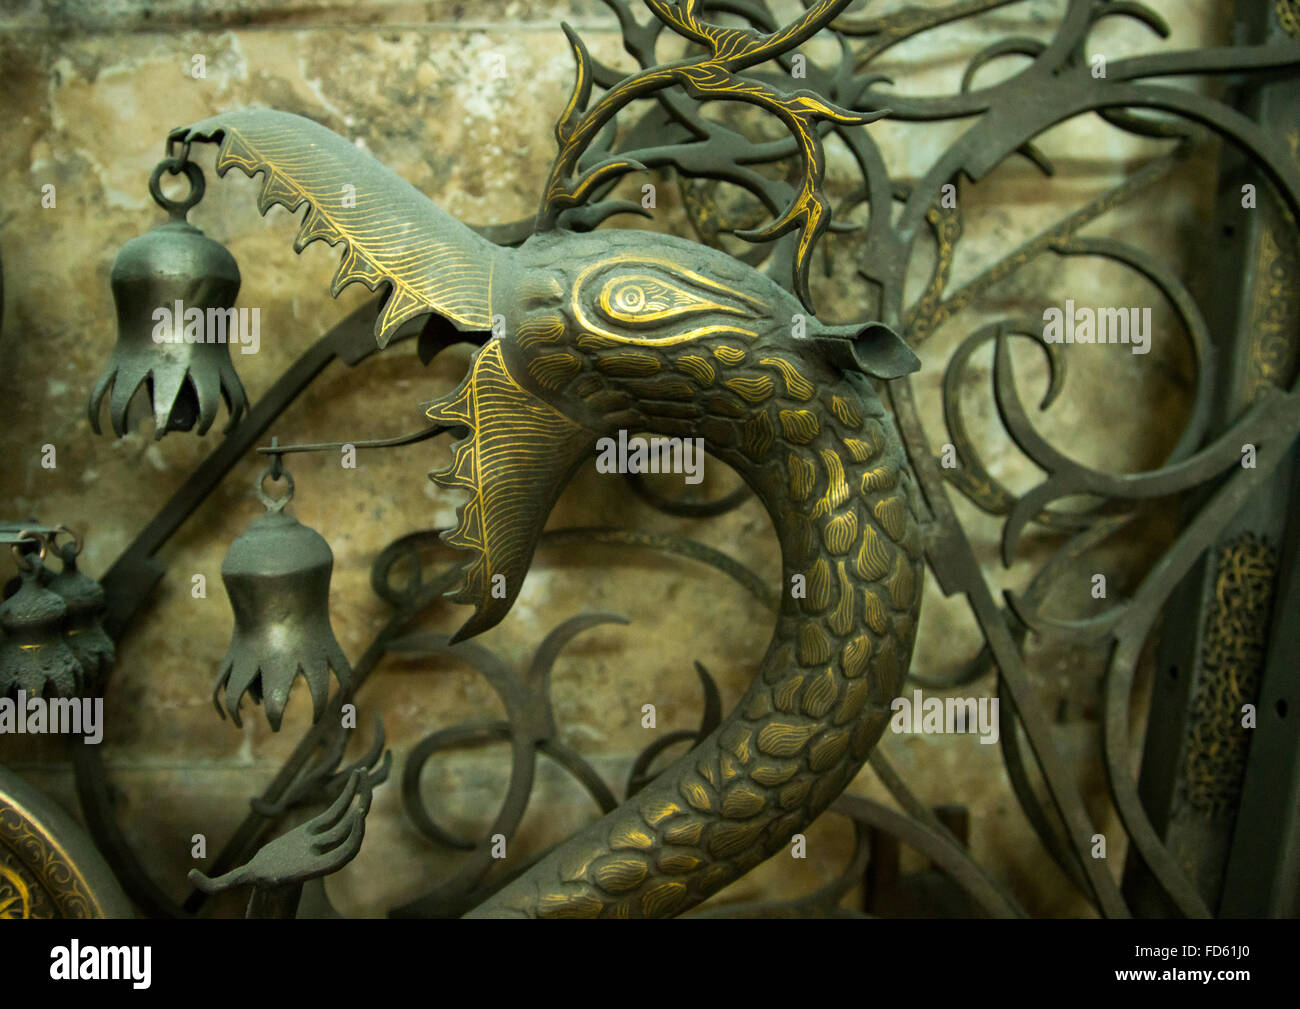 iron dragon in master safar fooladgar workshop, Central district, Tehran, Iran - Stock Image